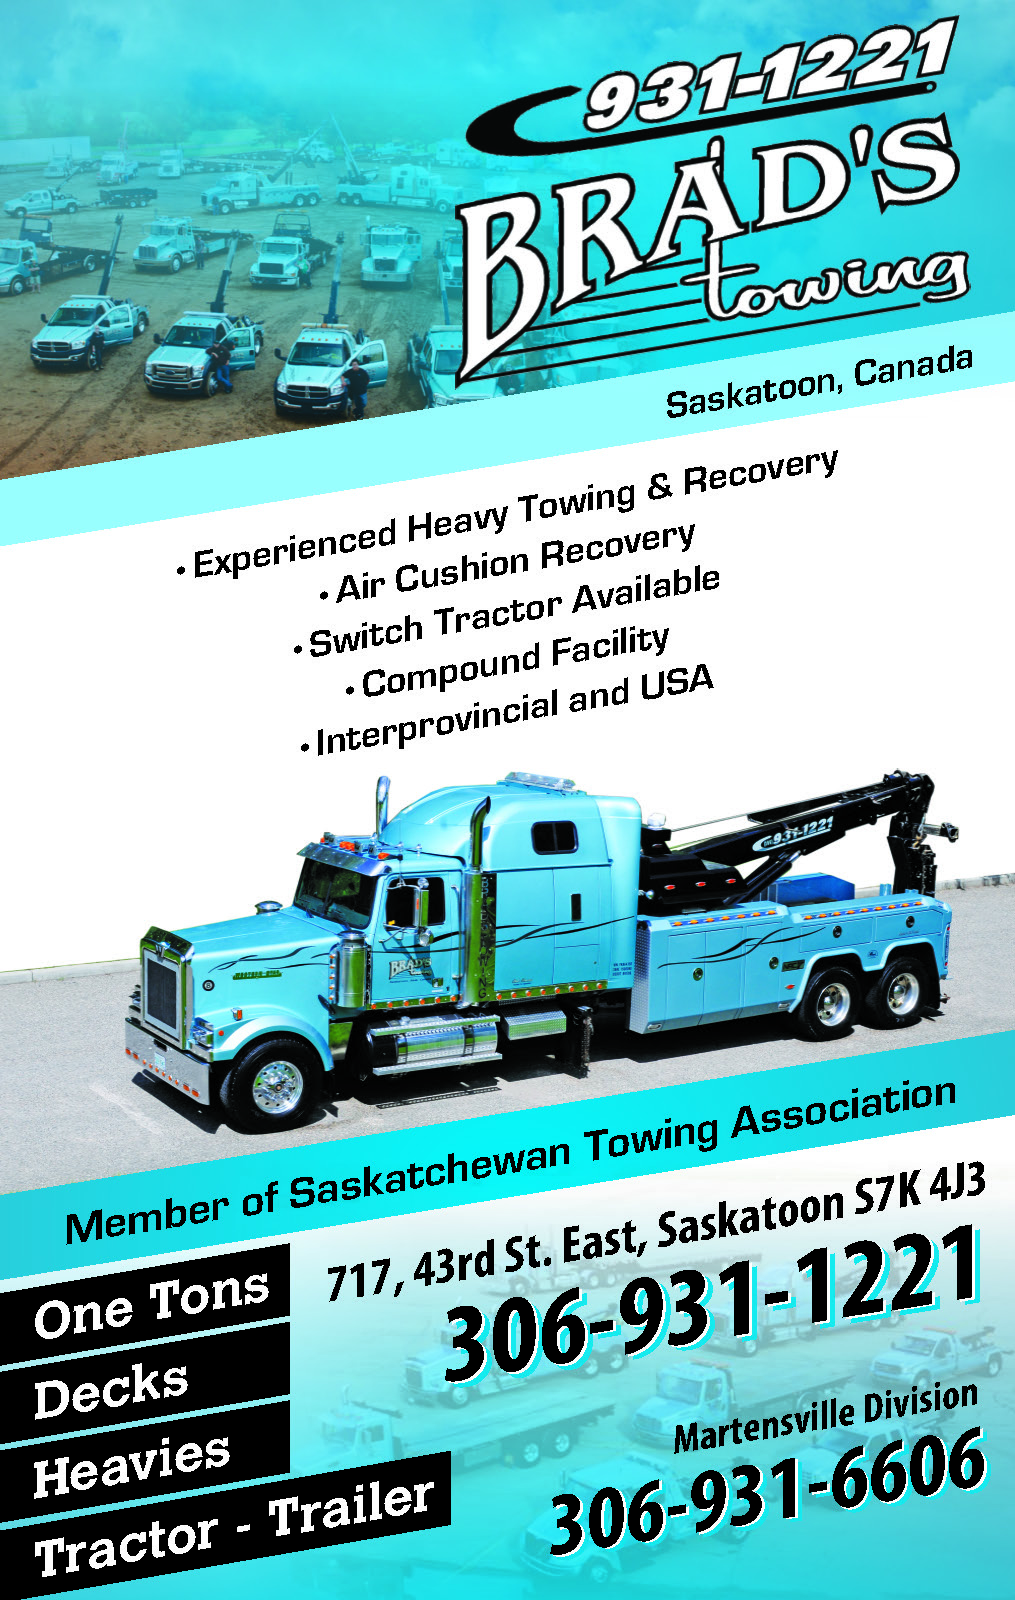 brads-towing-U45mpLg.jpeg